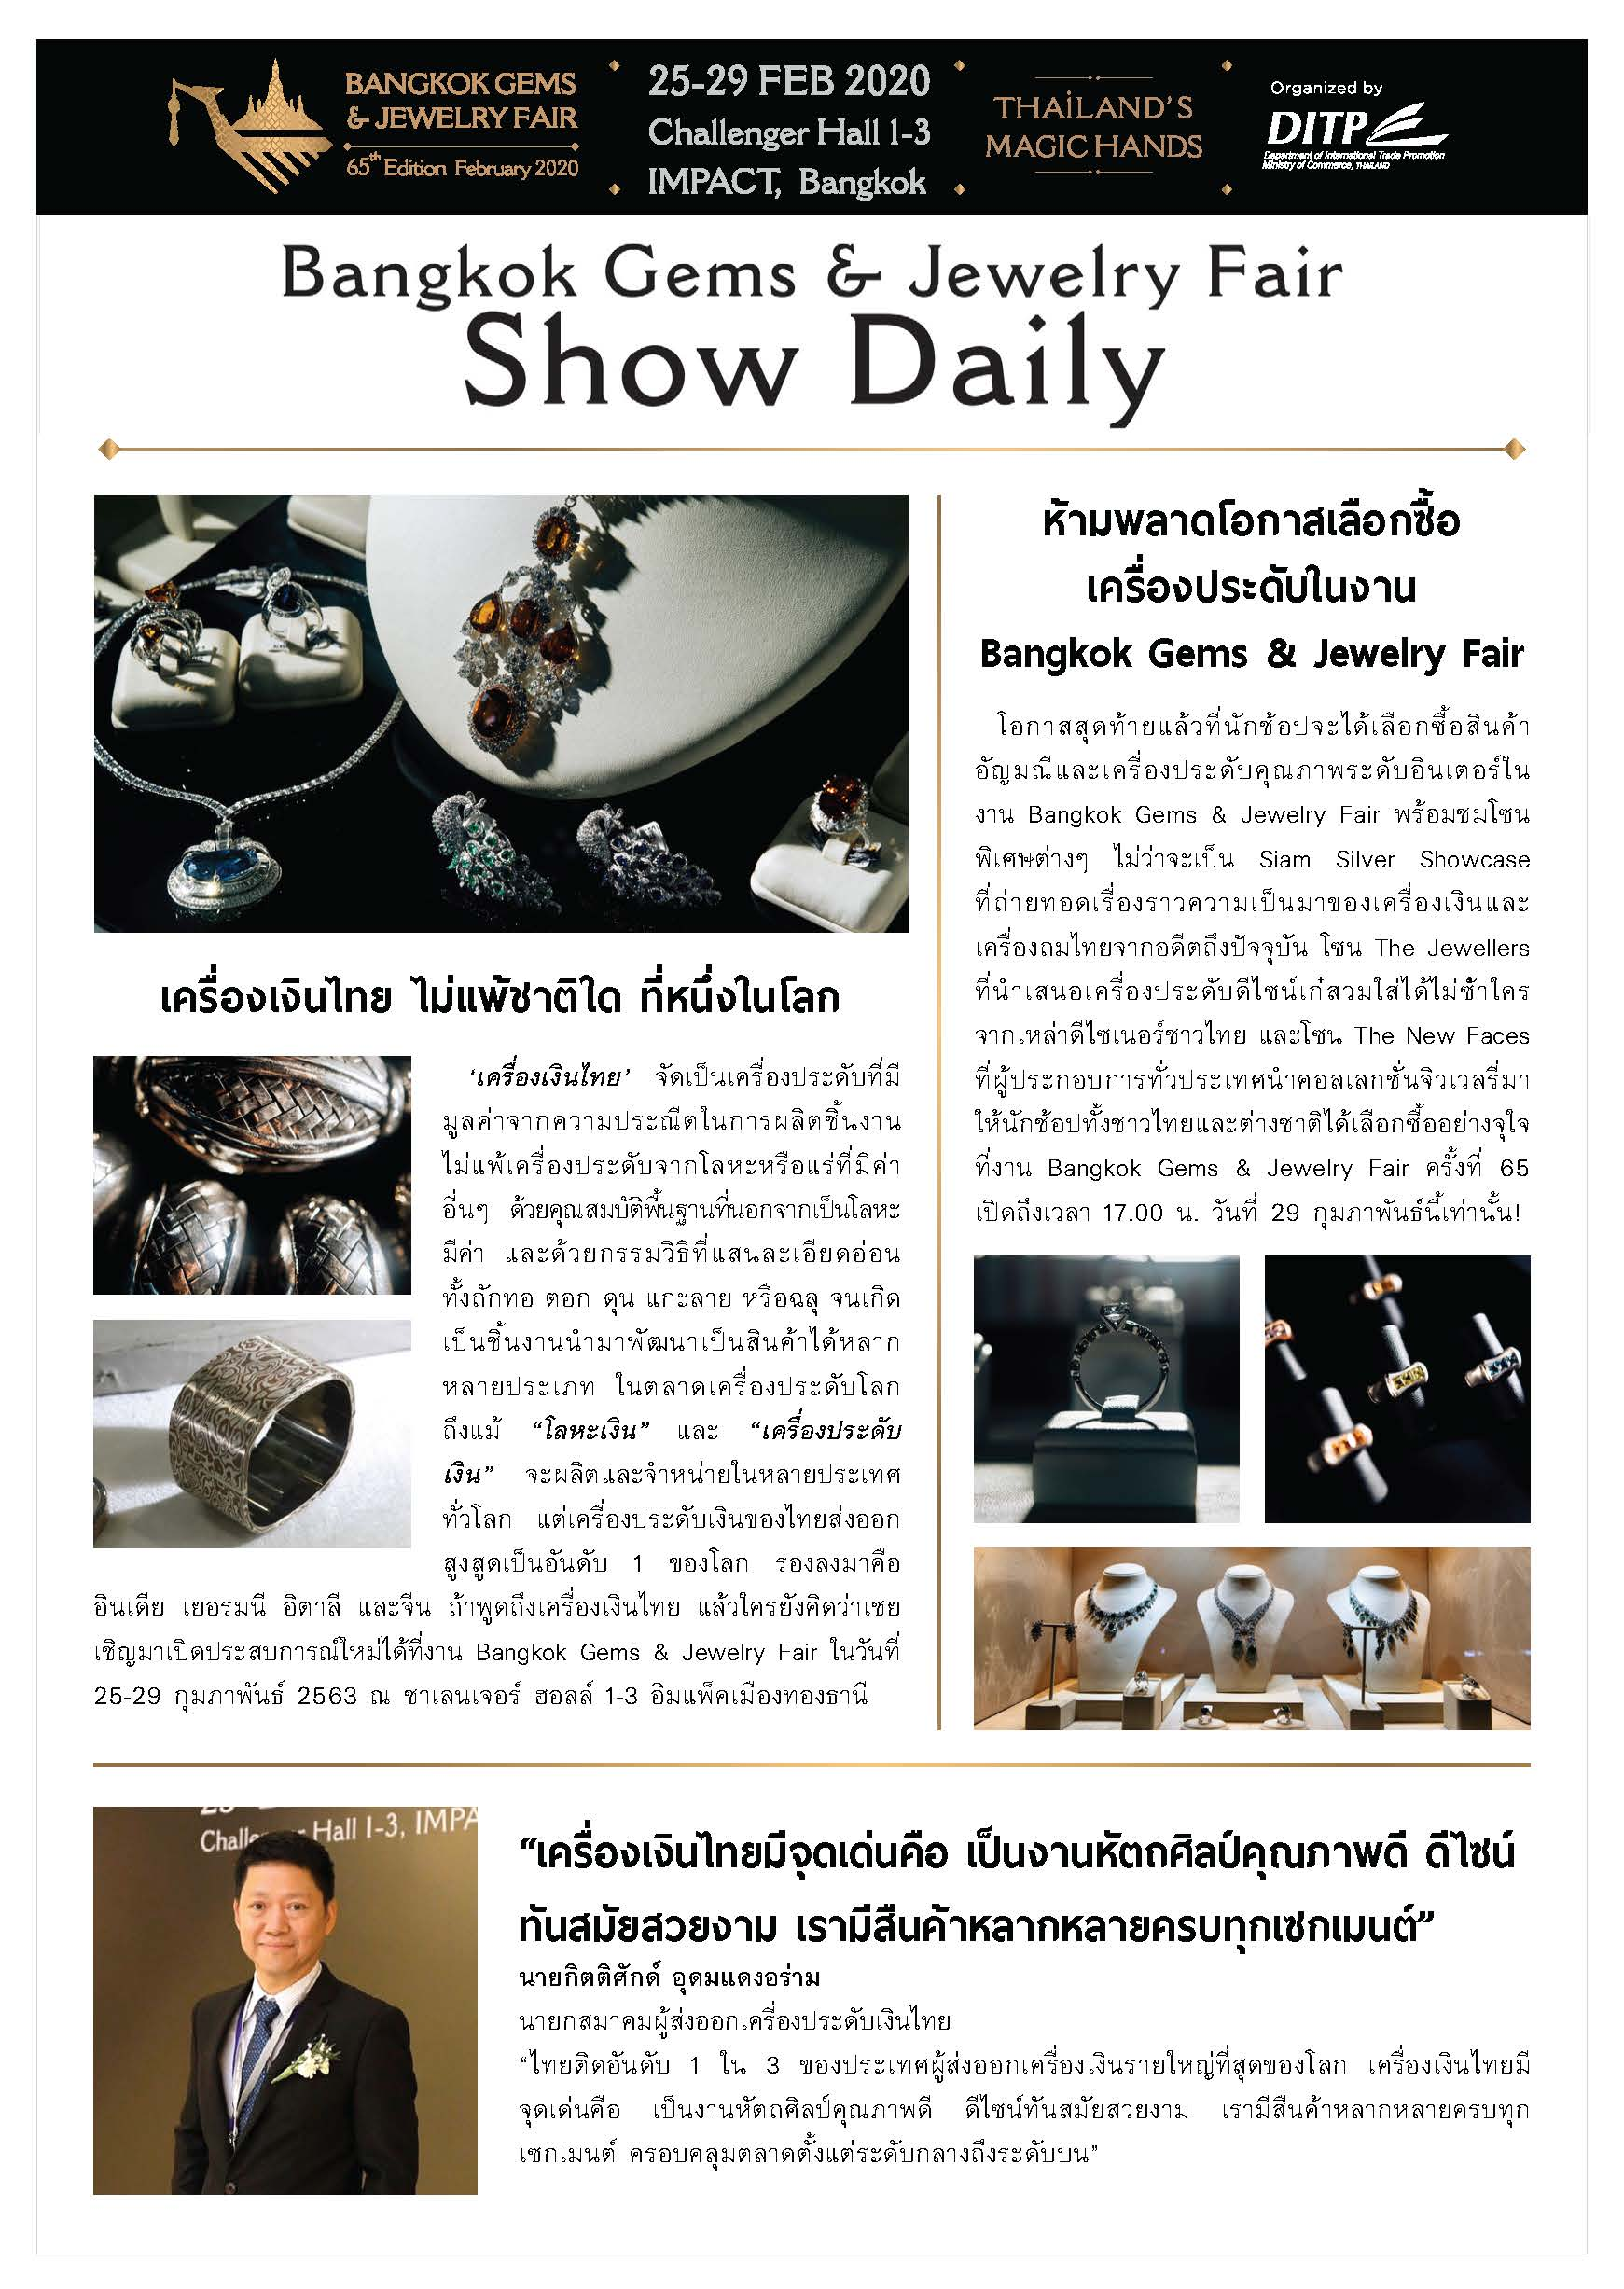 Bangkok Gems & Jewelry Fair Show Daily